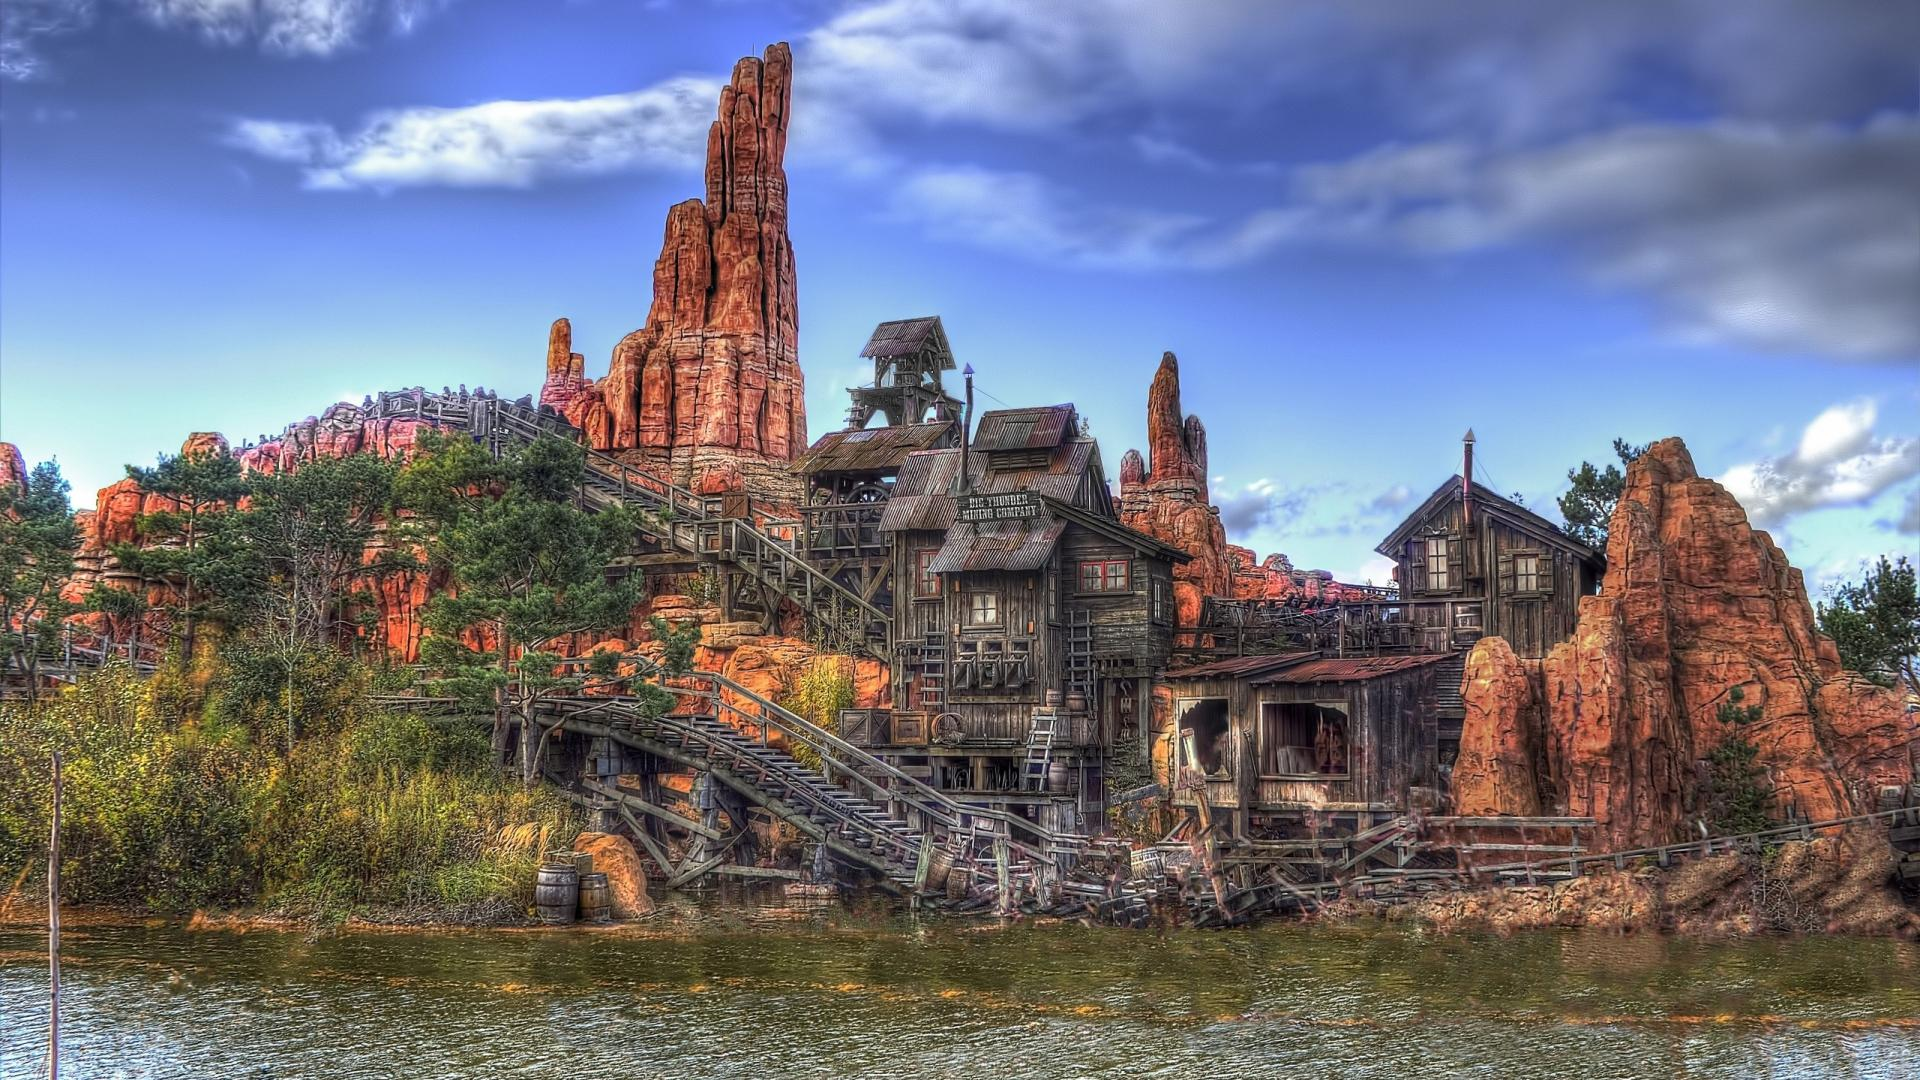 AMAZING WOODEN ROLLER COASTER HDR WALLPAPER   99019   HD Wallpapers 1920x1080